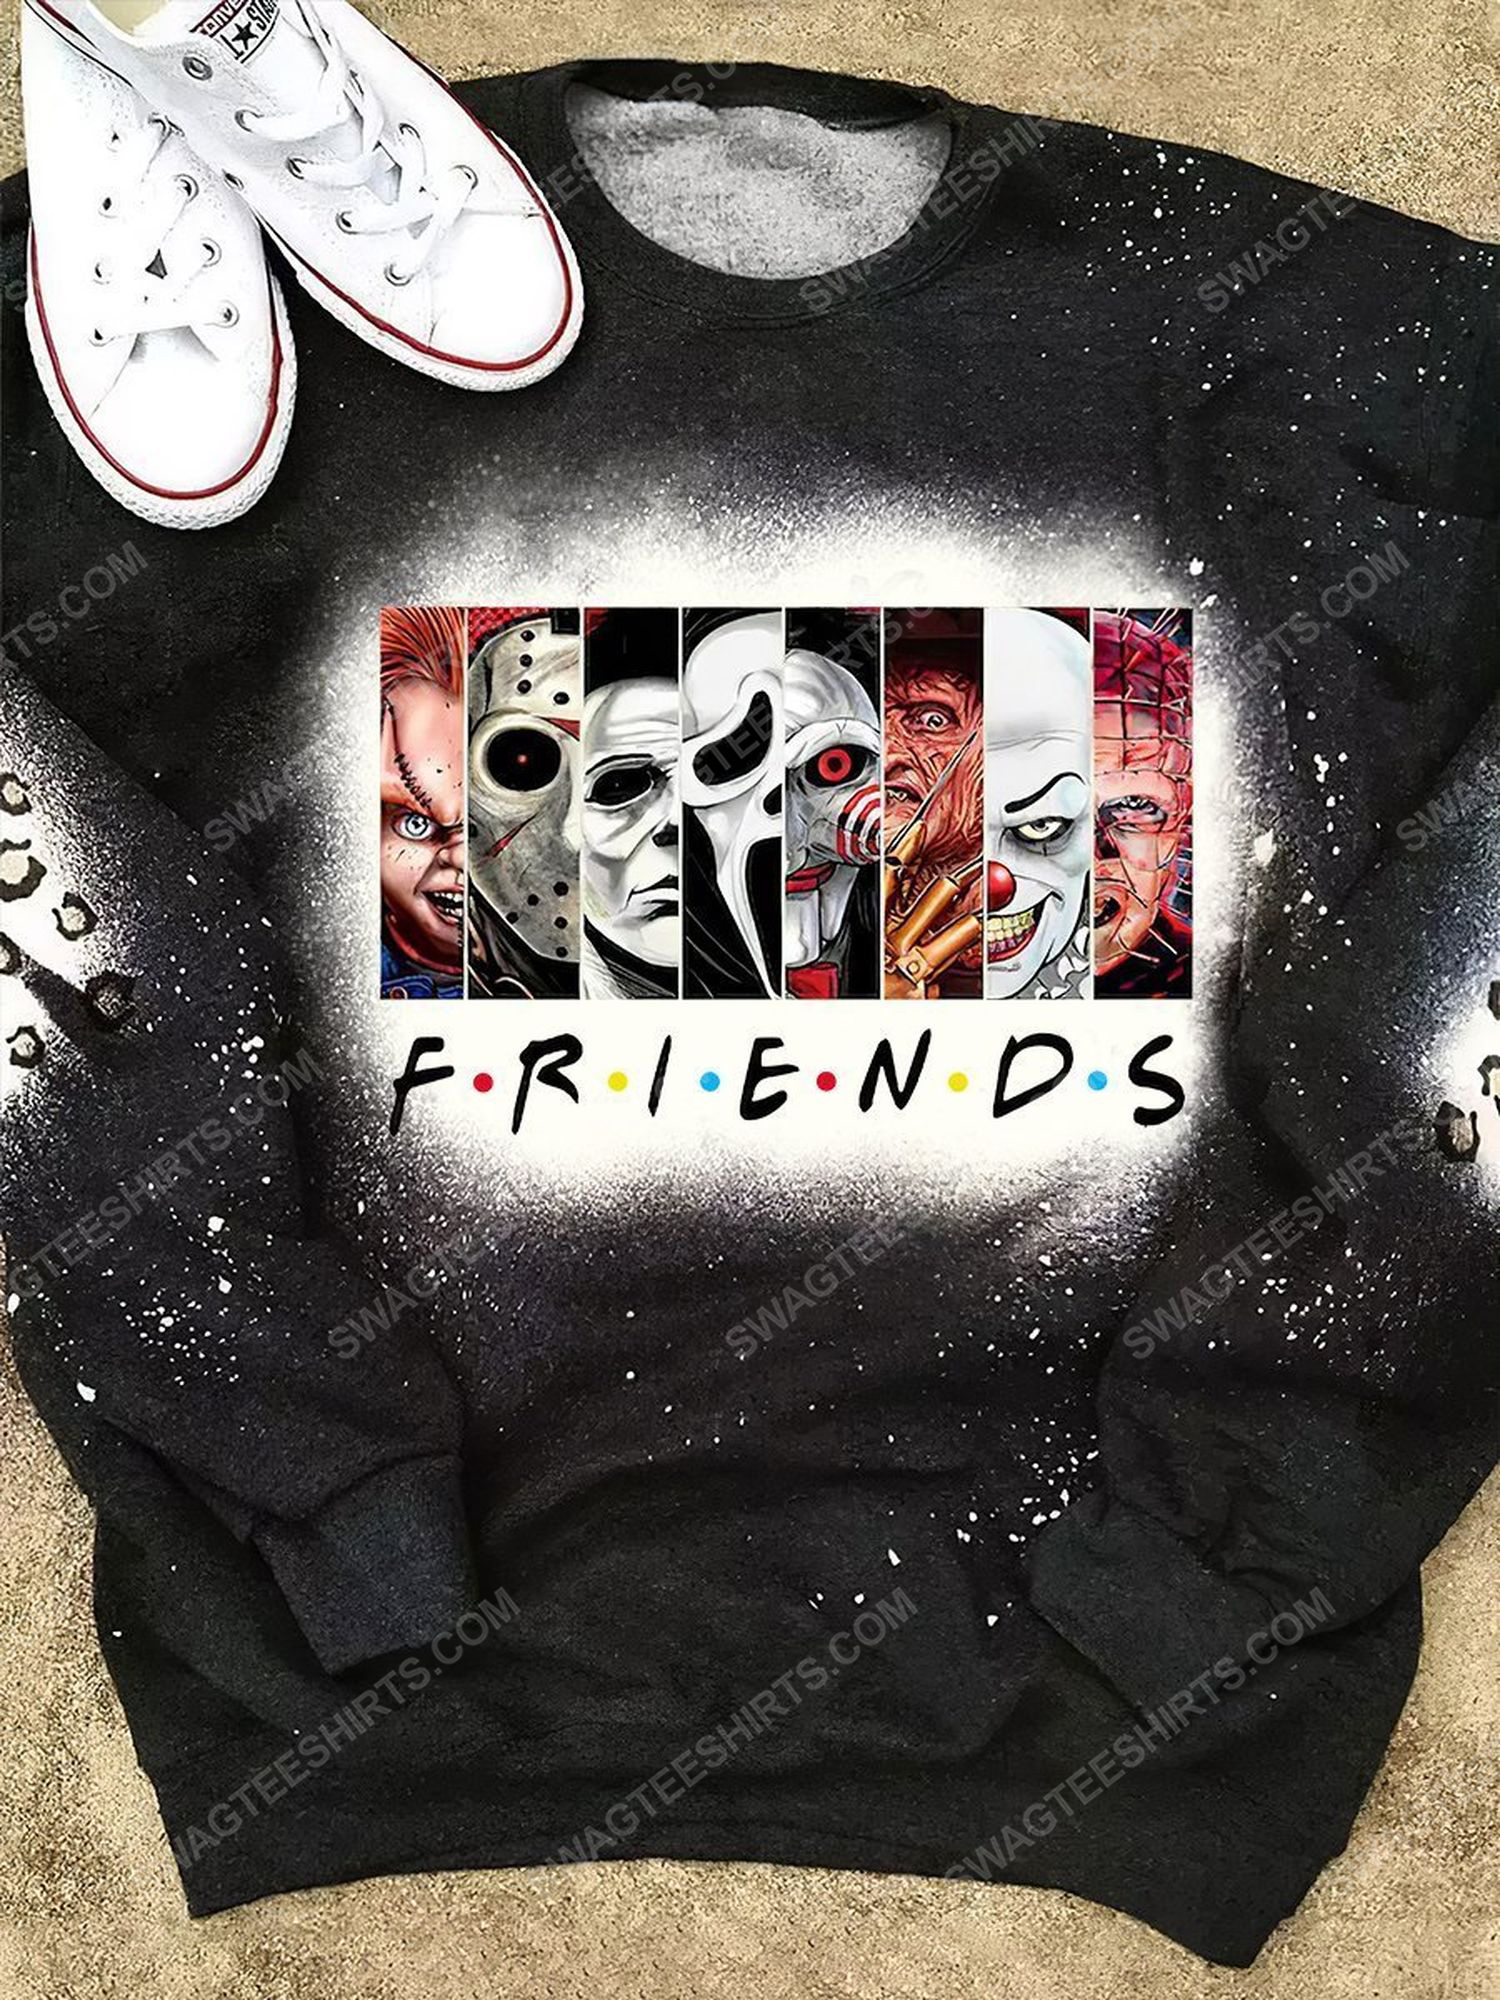 Halloween time horror movie characters bleached shirt 1 - Copy (3)